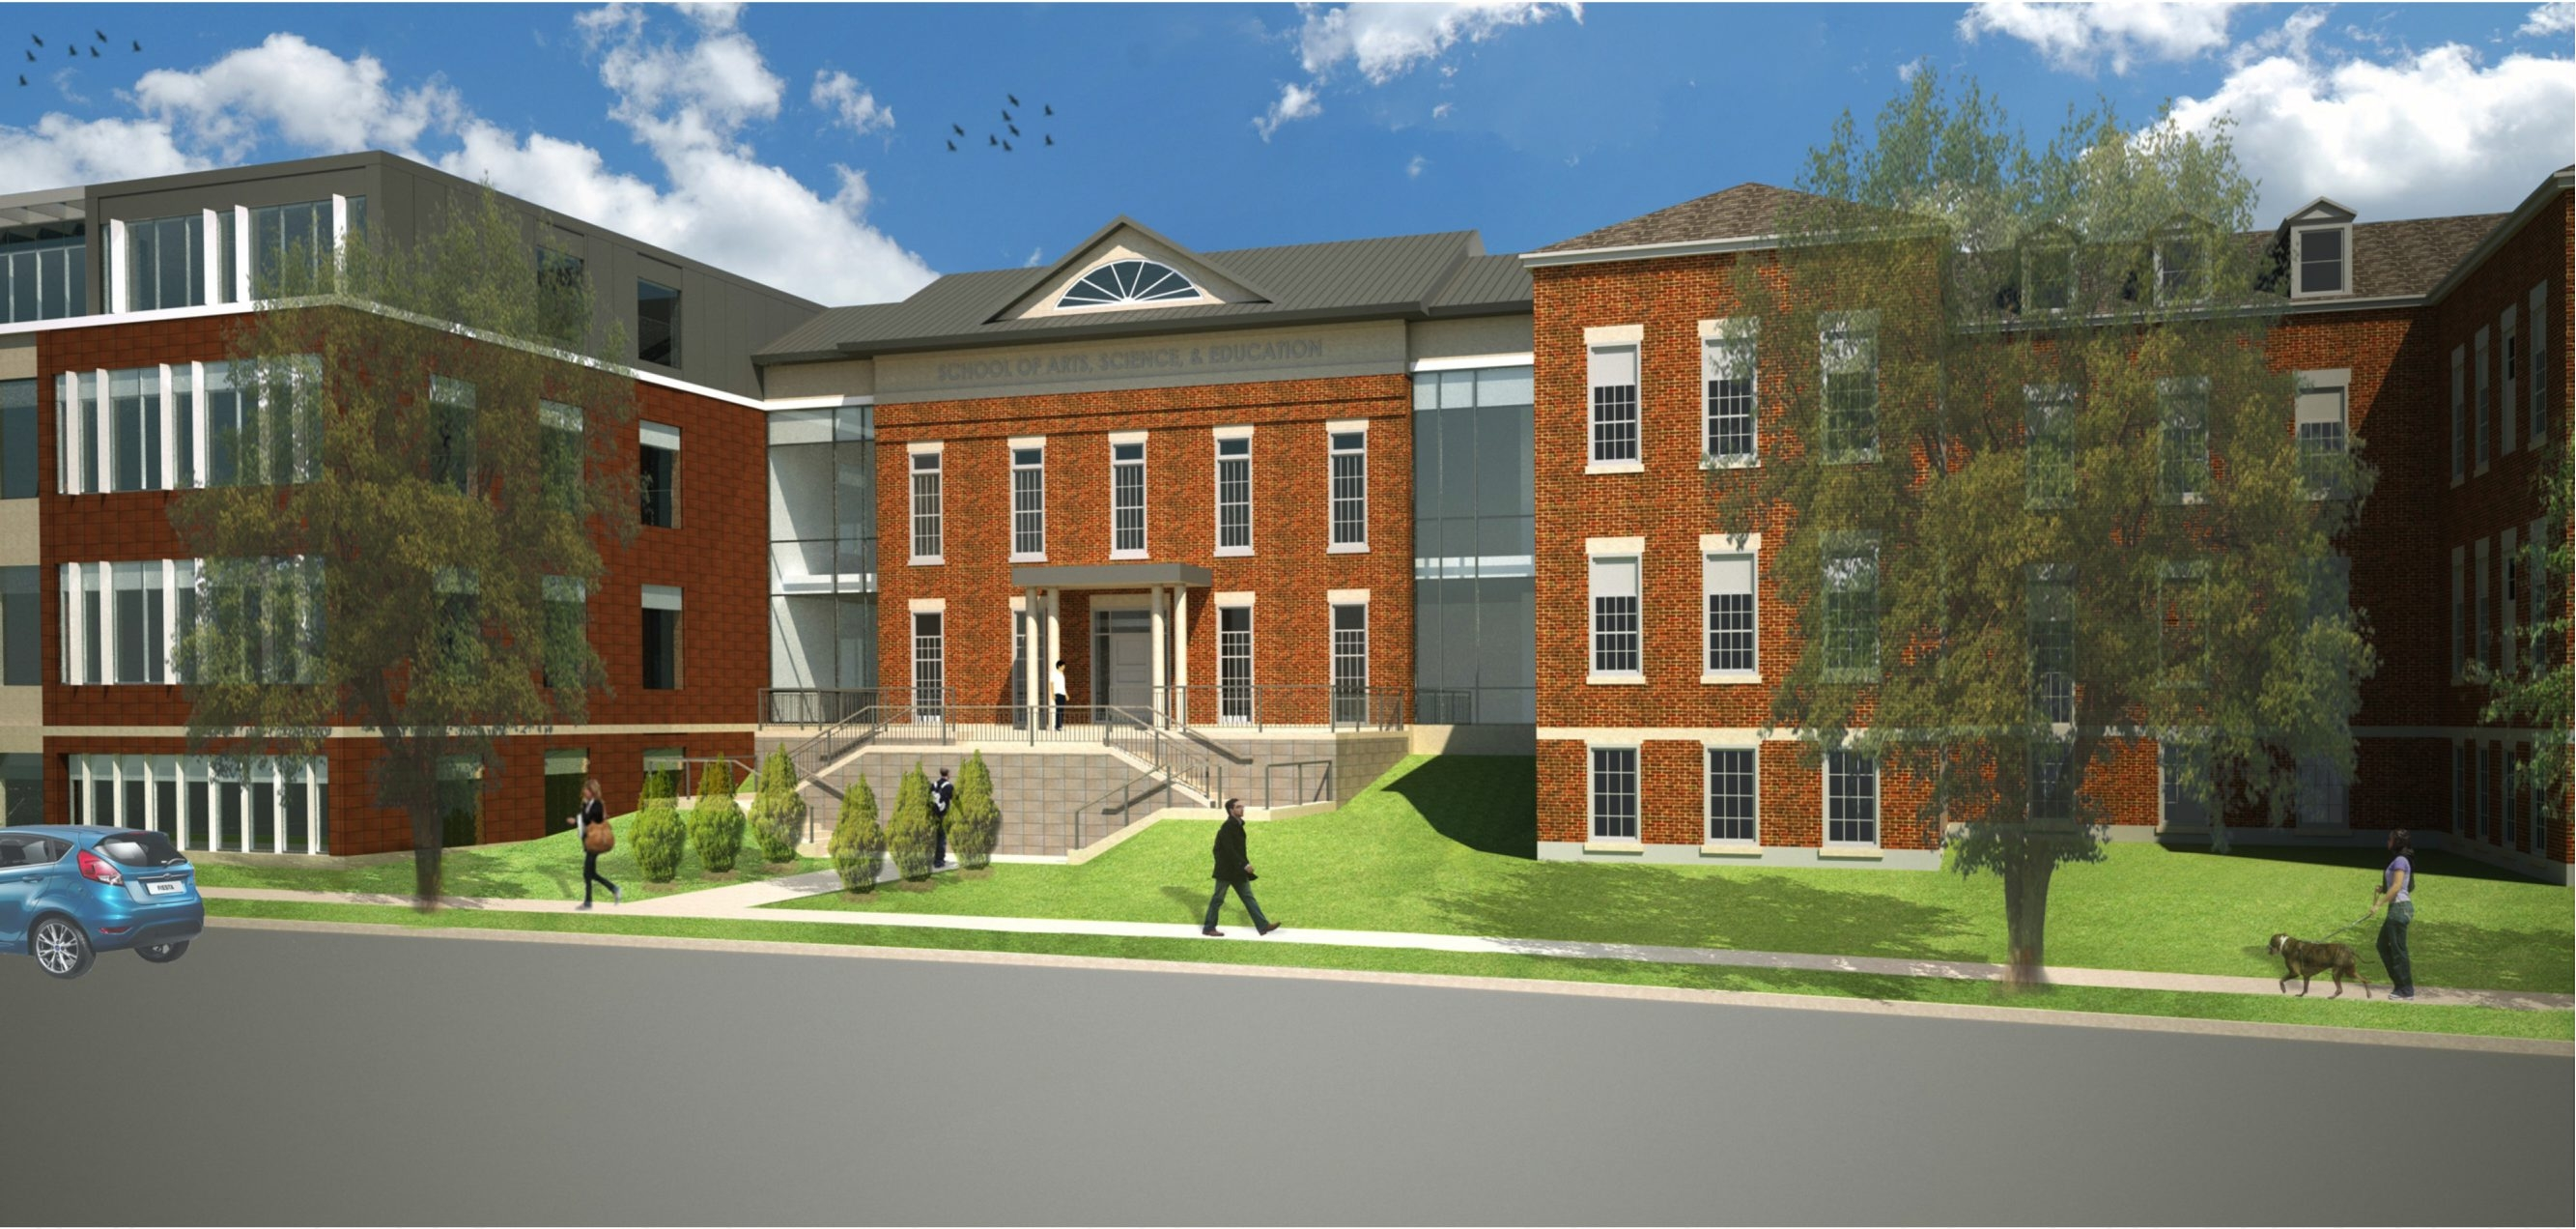 This rendering shows D'Youville College's future Art, Sciences and Education Building on Niagara Street. The project is expected to be completed in August 2015.